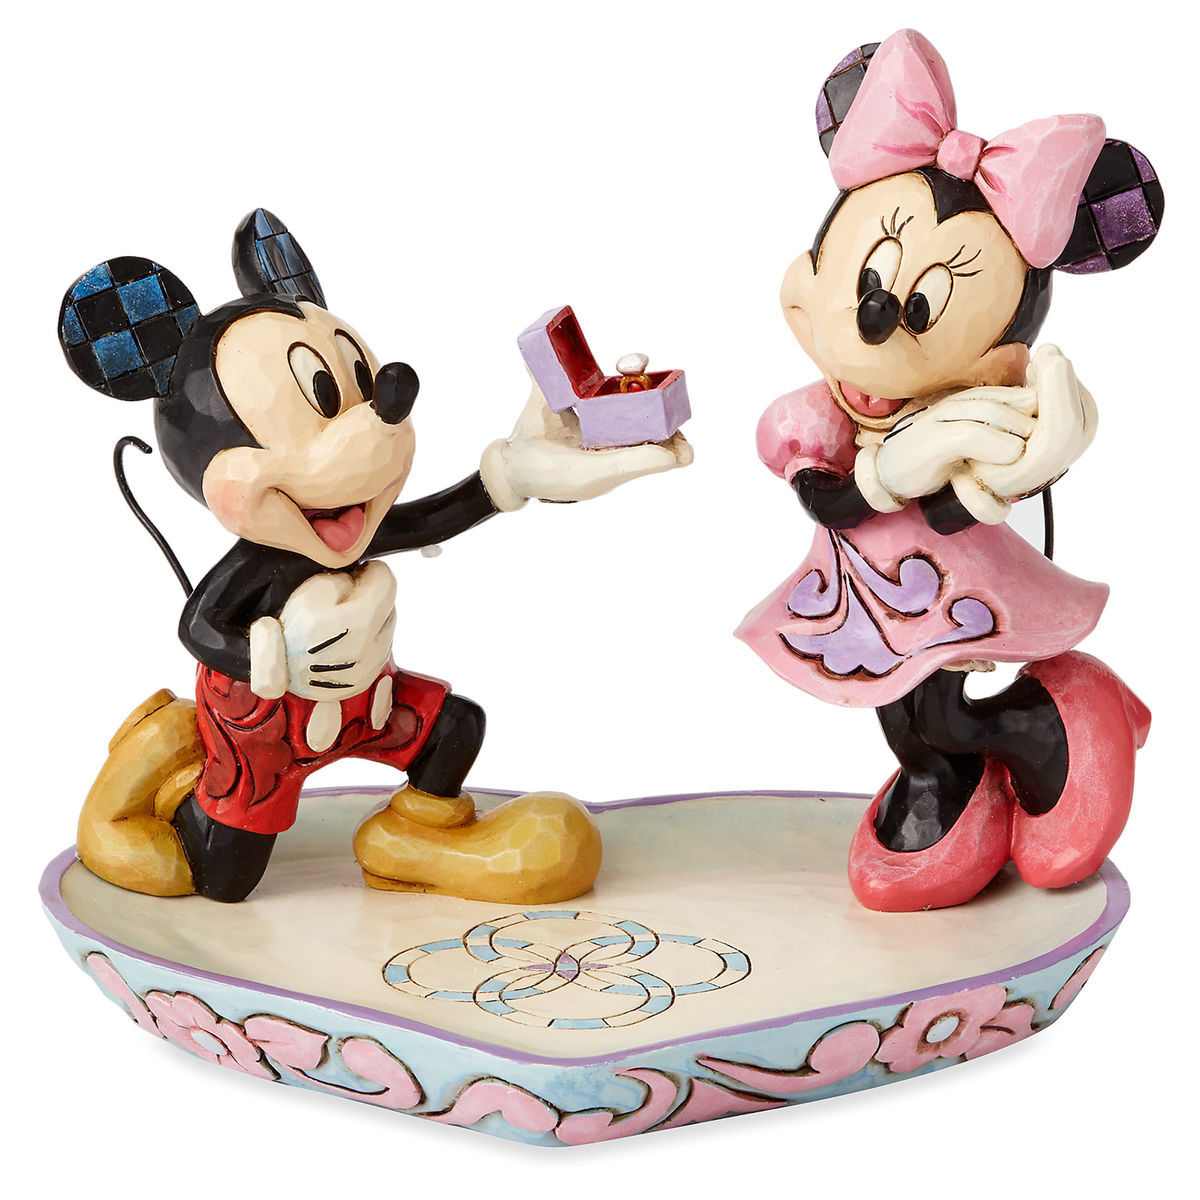 Mickey And Minnie Mouse Figure With Tray By Jim Shore Shopdisney